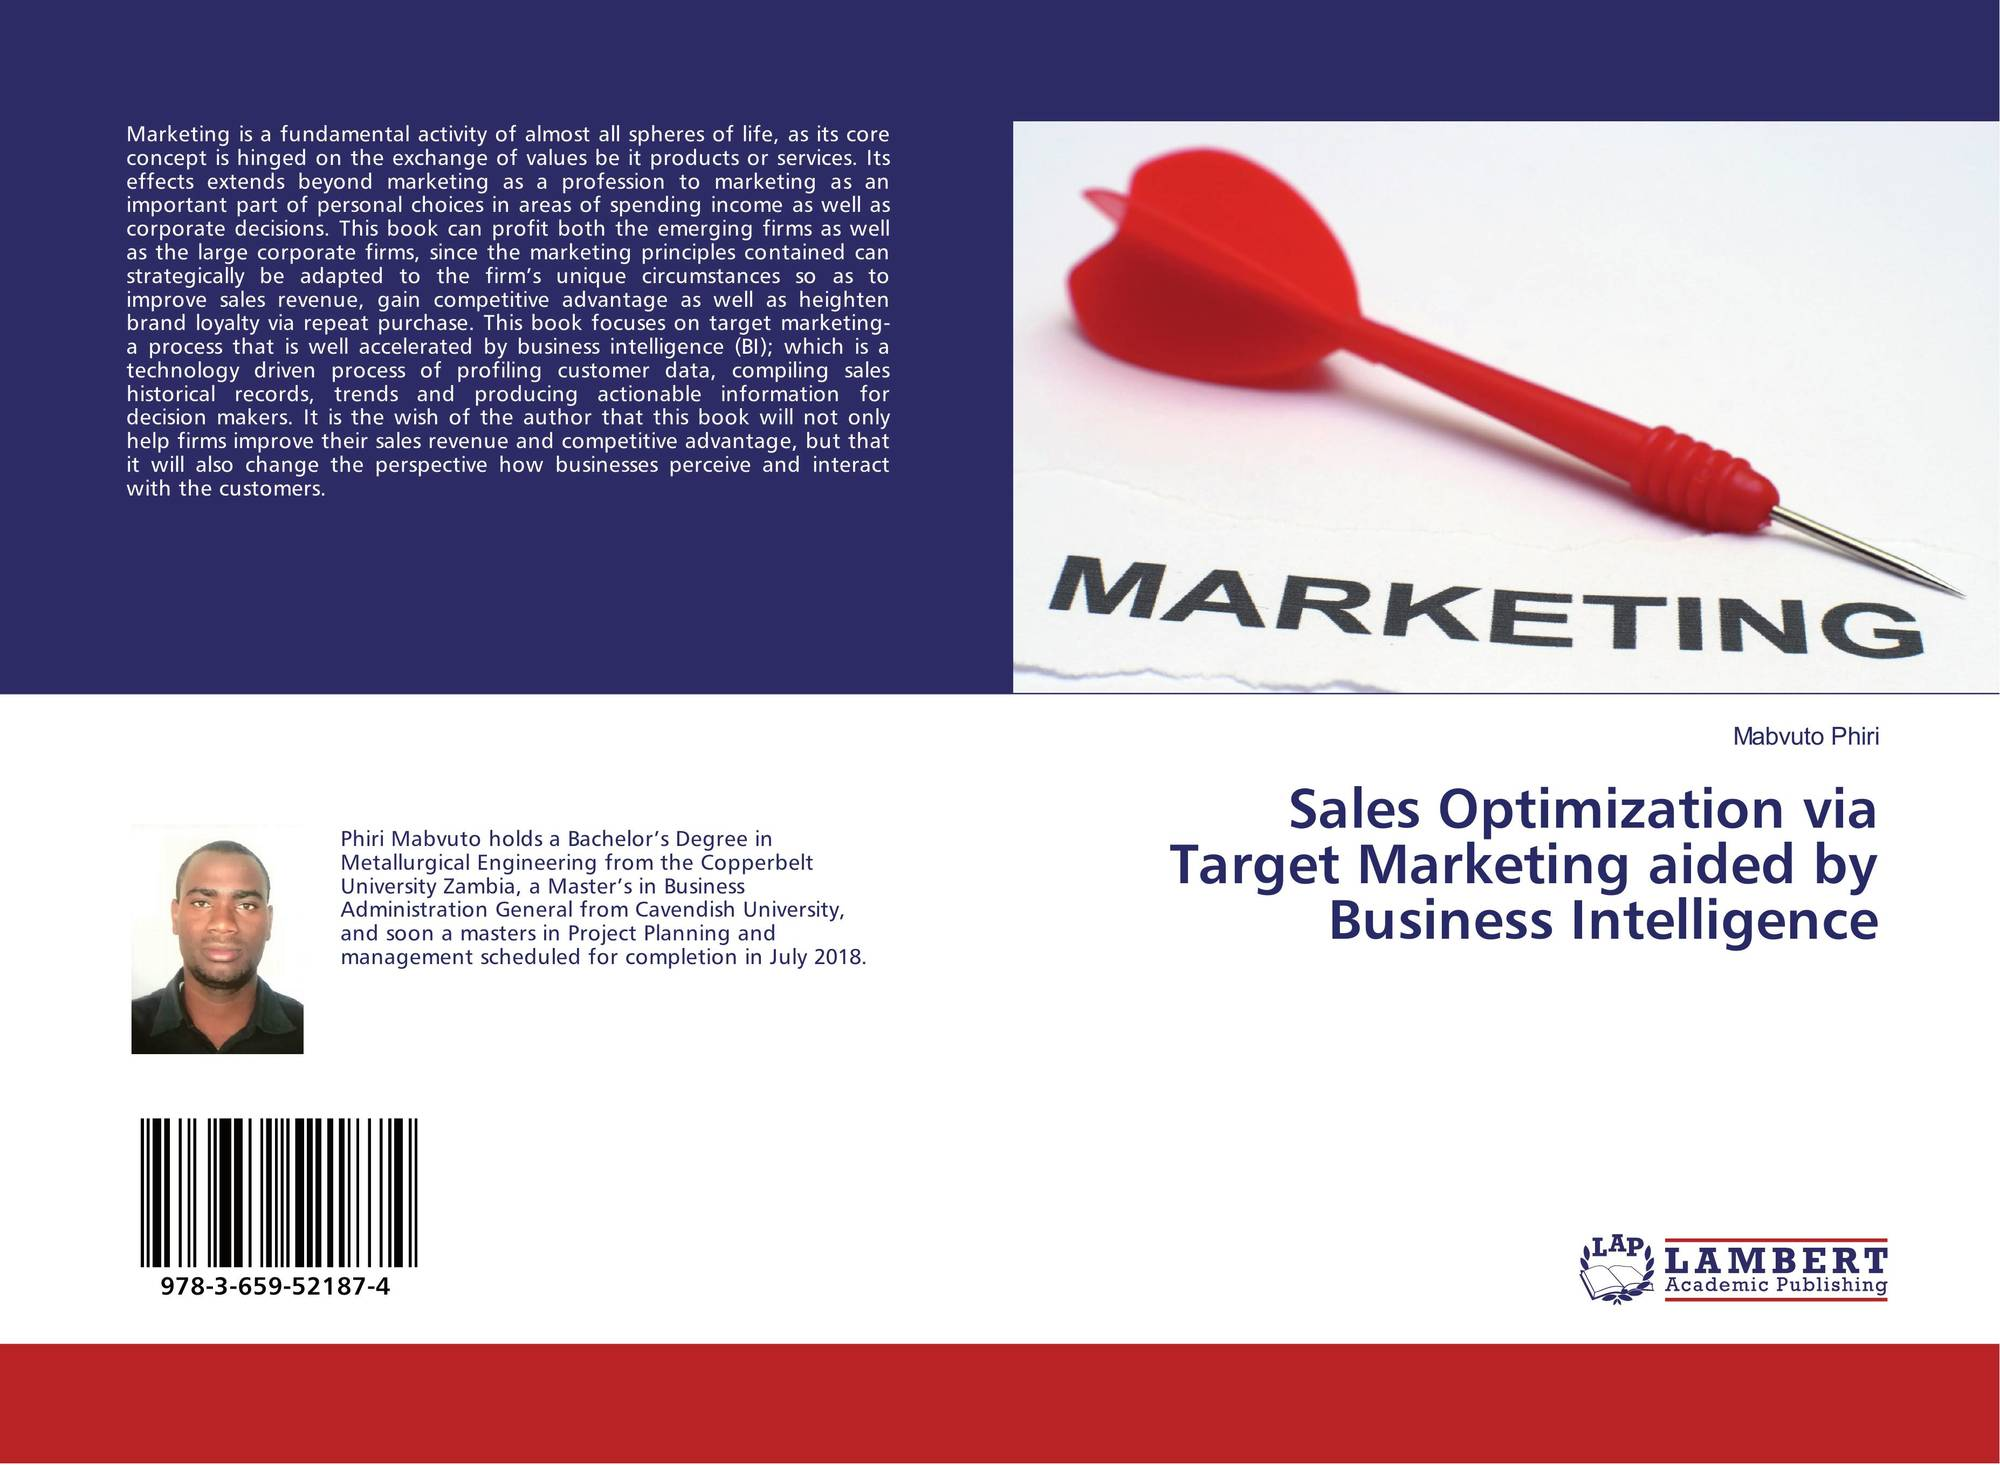 marketing and fundamental concepts Marketing and marketing concepts are different from each other - marketing promotes, while marketing concepts are philosophies determined by a clear objective for an organization's market 2.